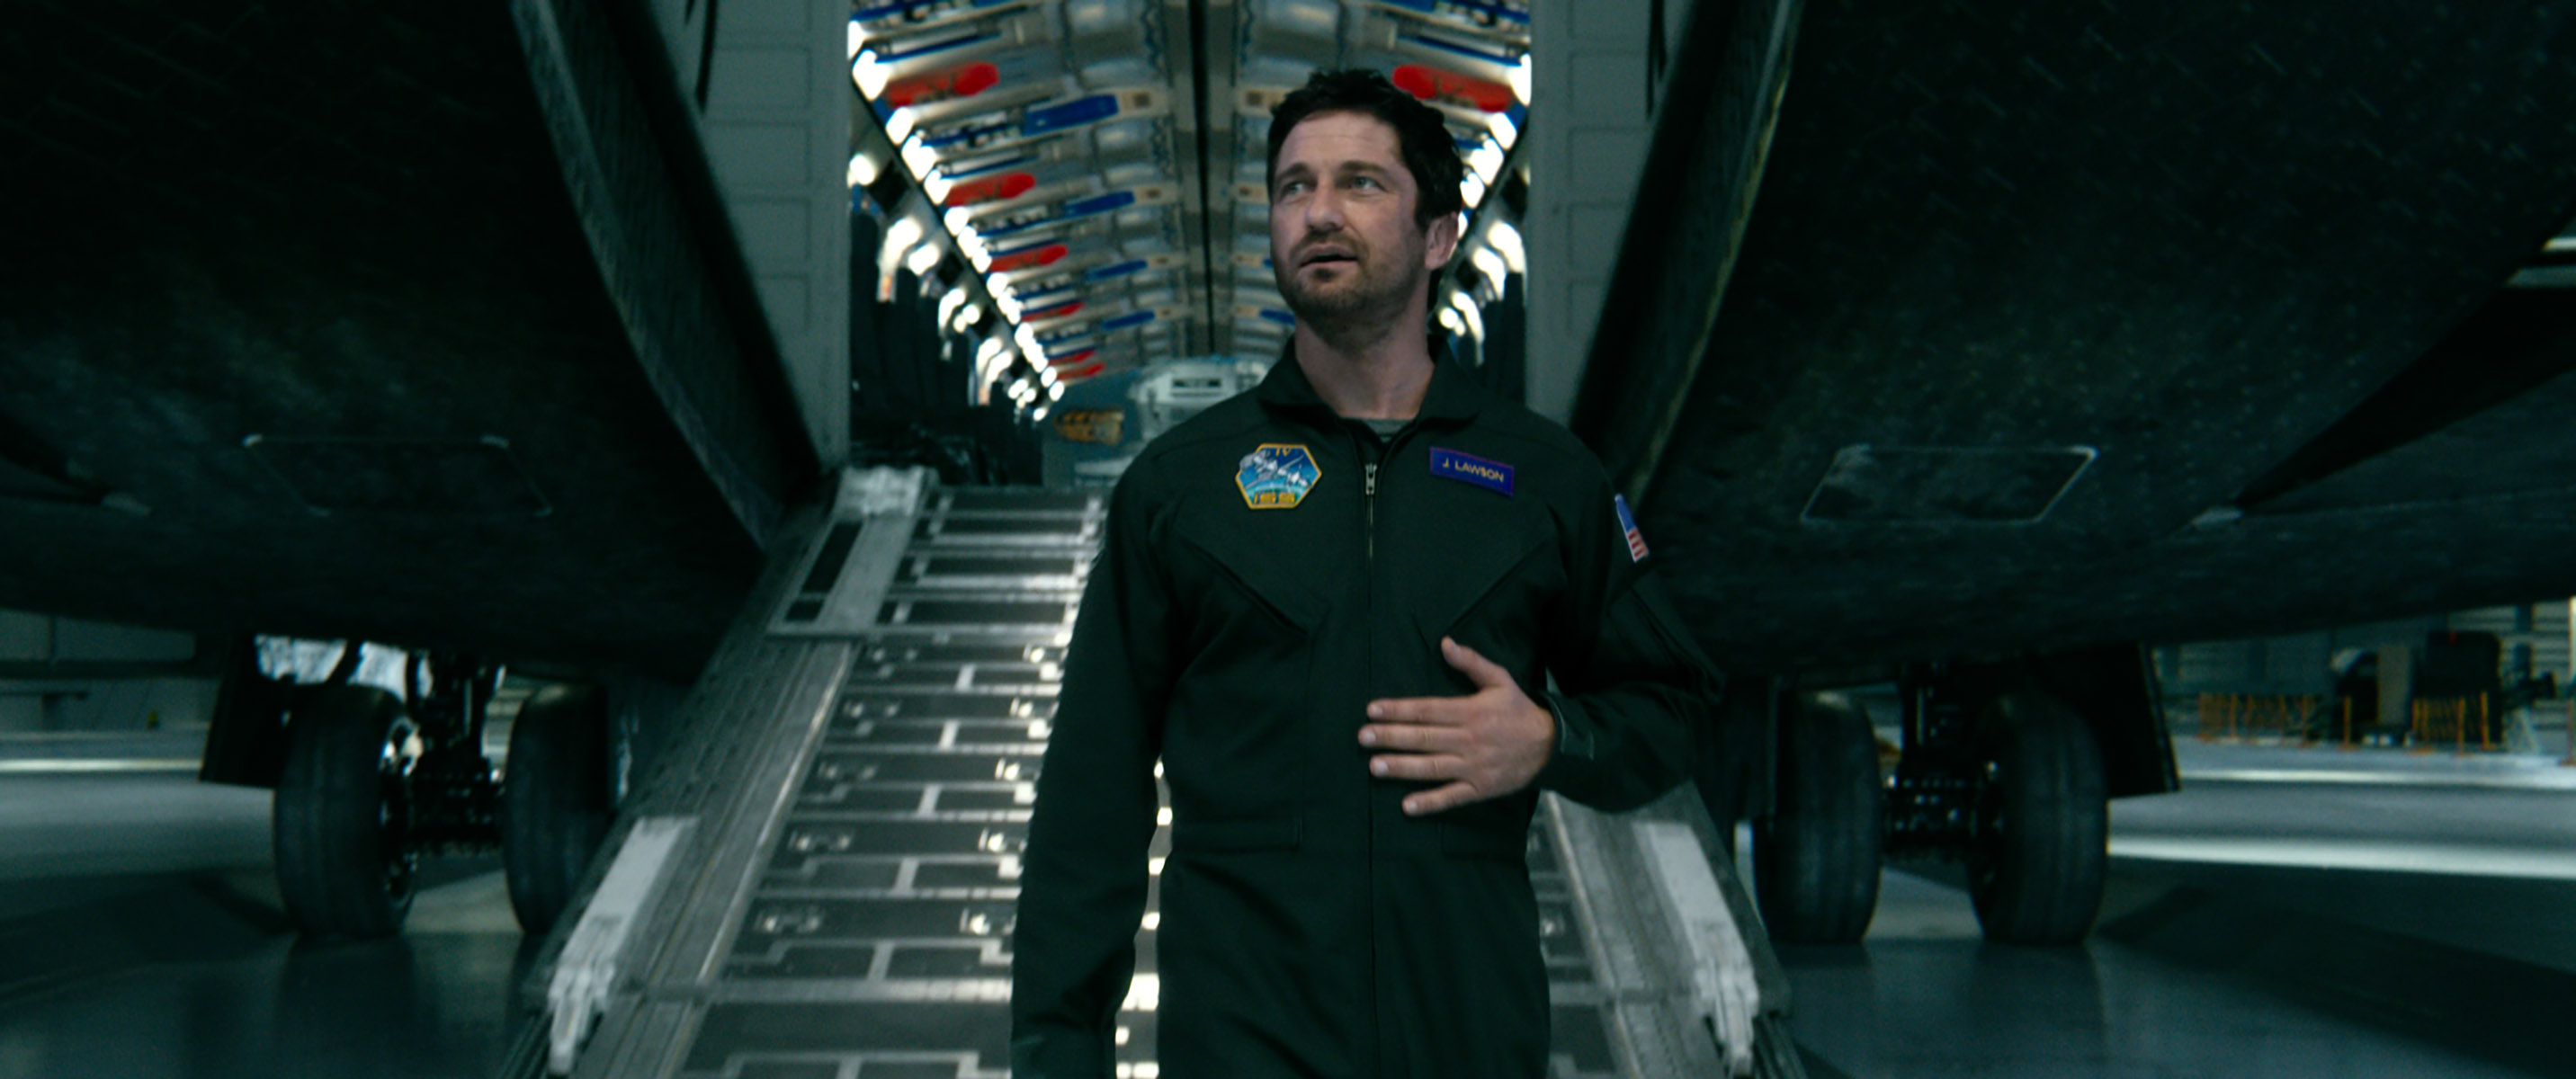 "GERARD BUTLER as Jake Lawson in Warner Bros. Pictures' and Skydance's suspense thriller ""GEOSTORM,"" a Warner Bros. Pictures release. Courtesy of Warner Bros. Pictures"